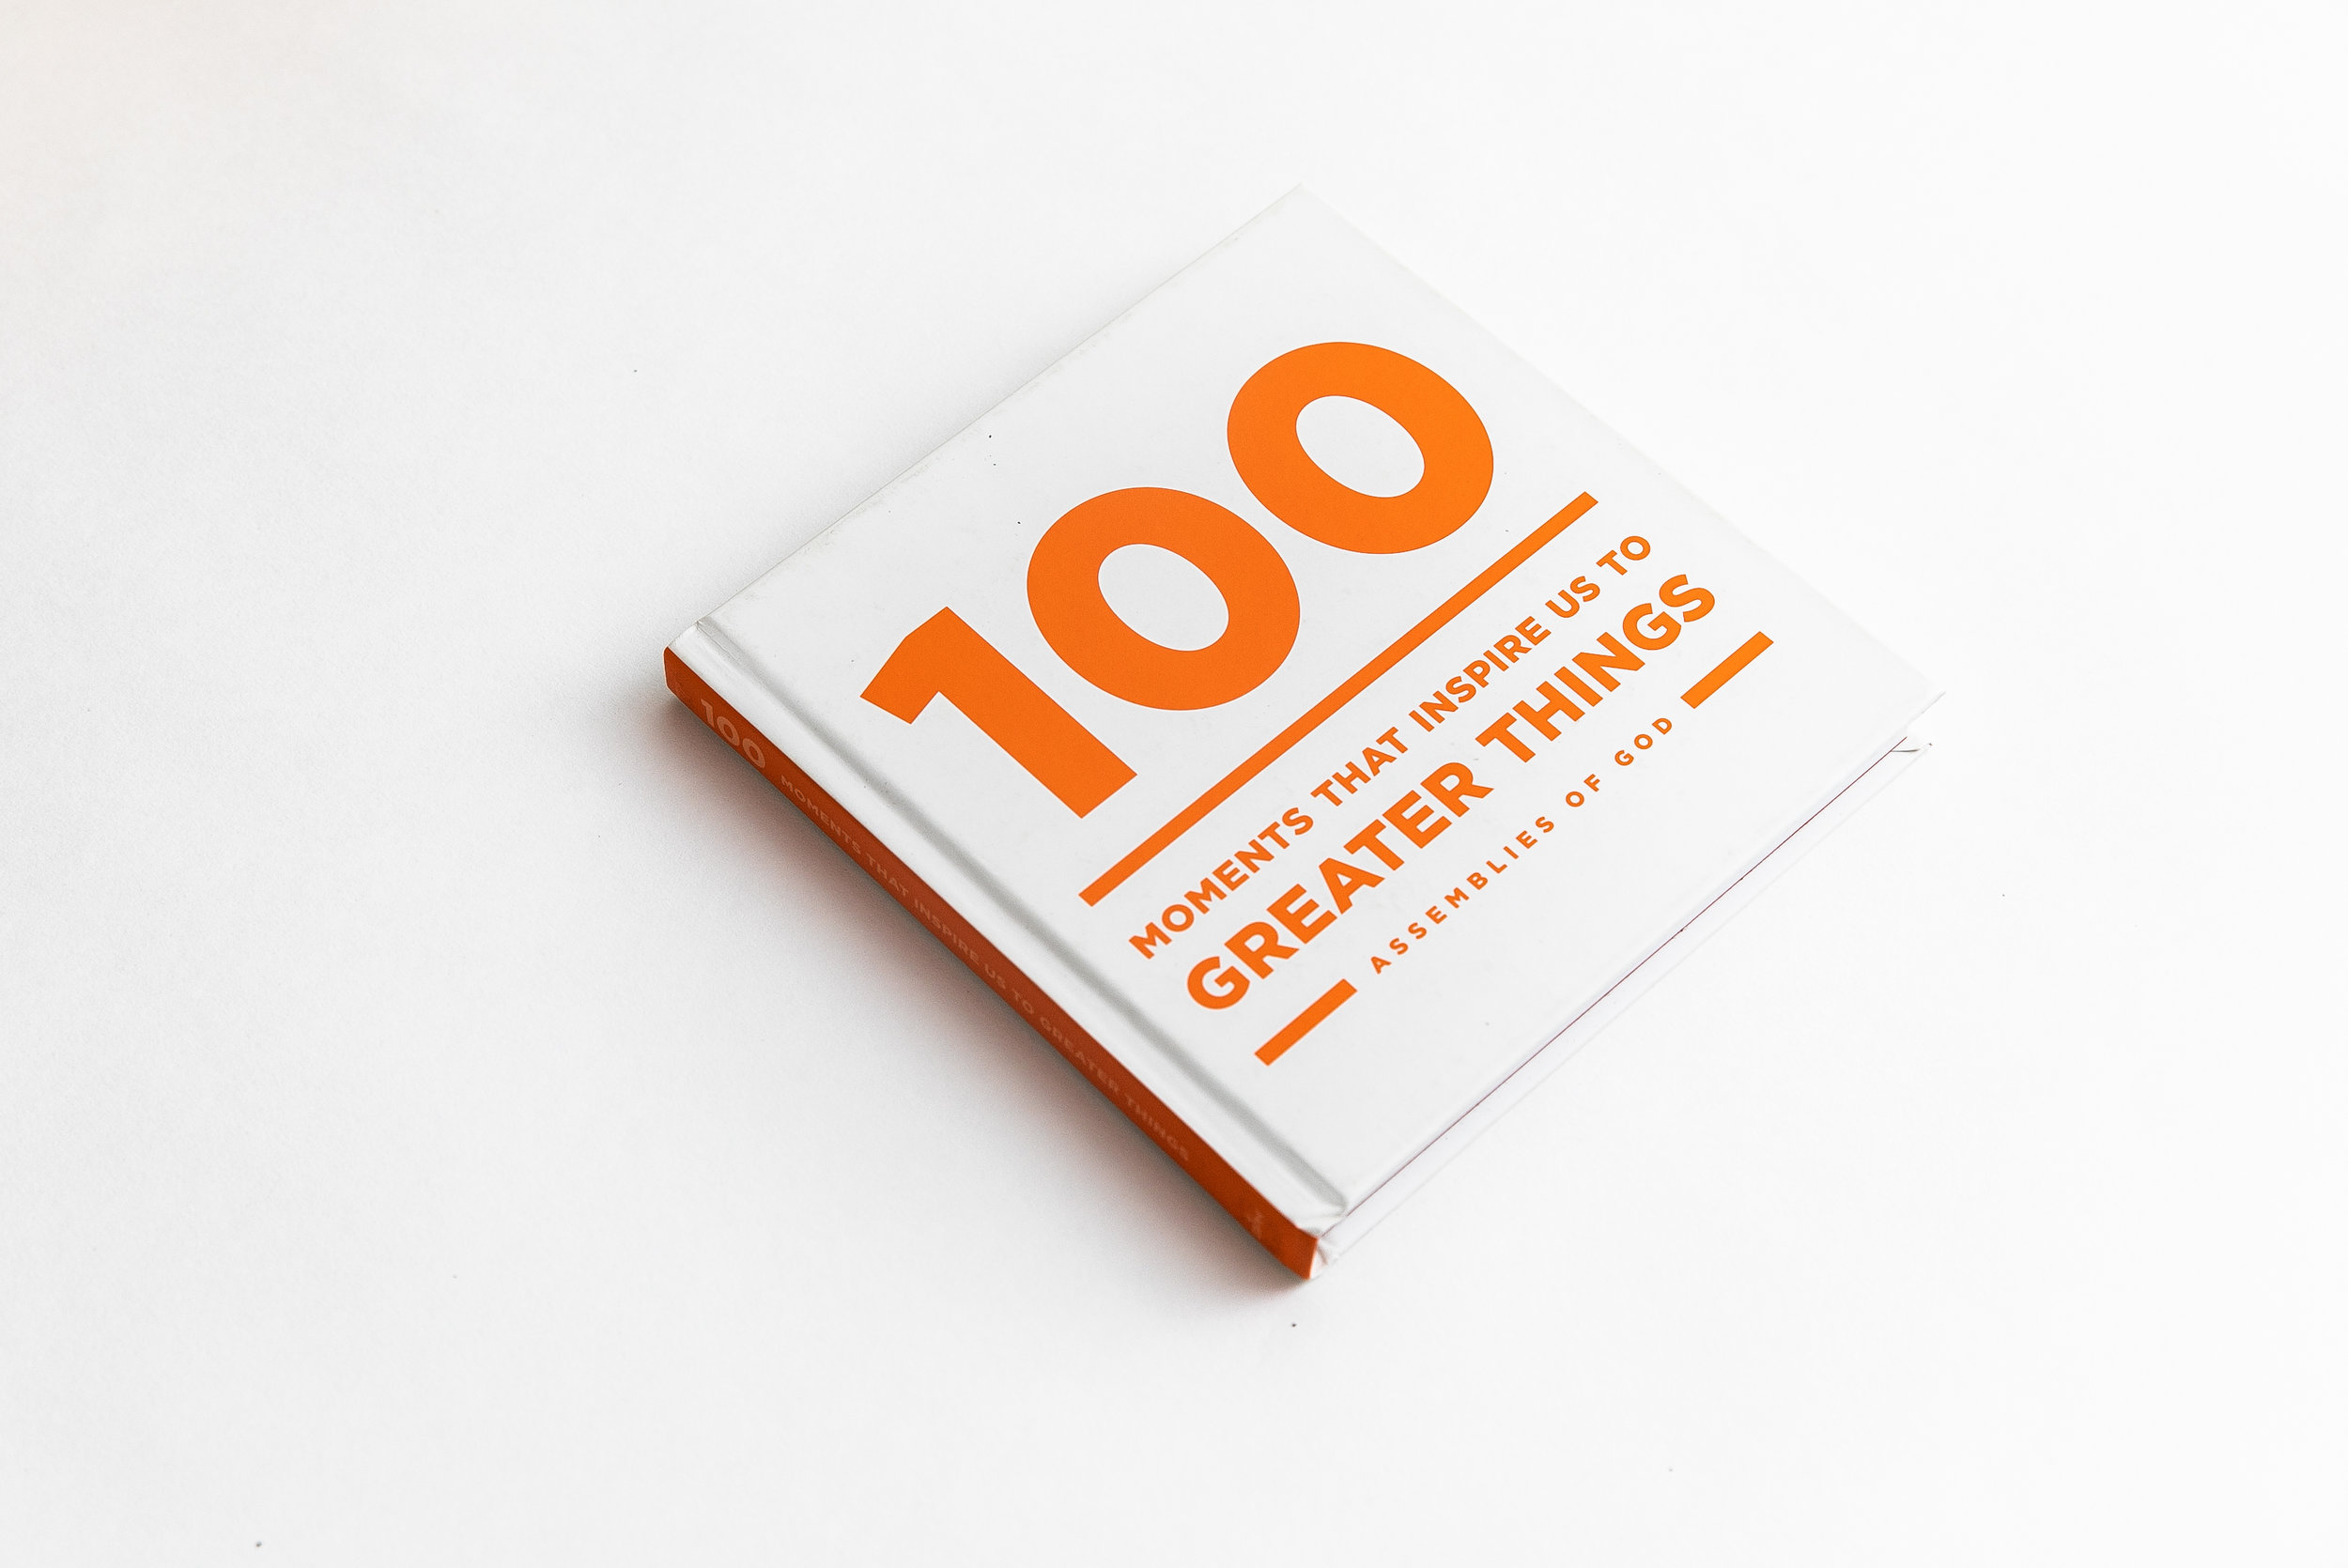 100 Moments That Inspire Us to Greater Things  from My Healthy Church